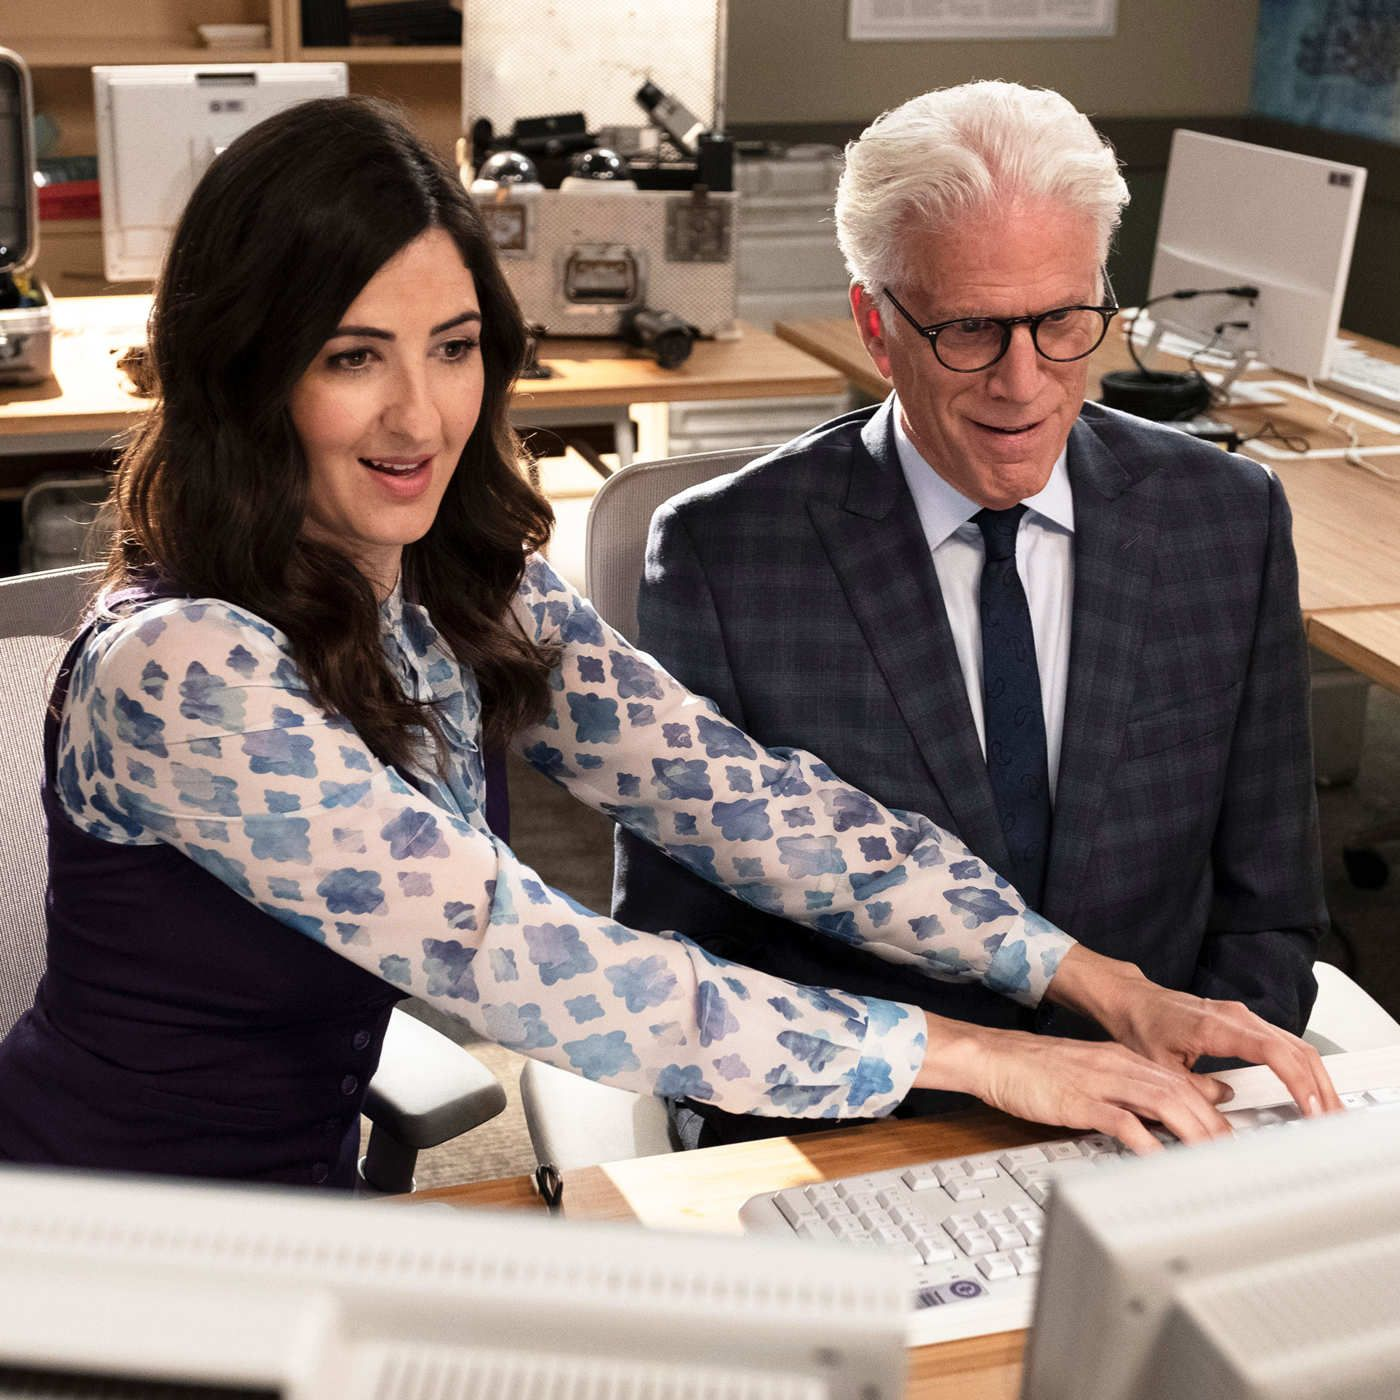 DuArcy Carden and Ted Danson in The Good Place The Good Place in